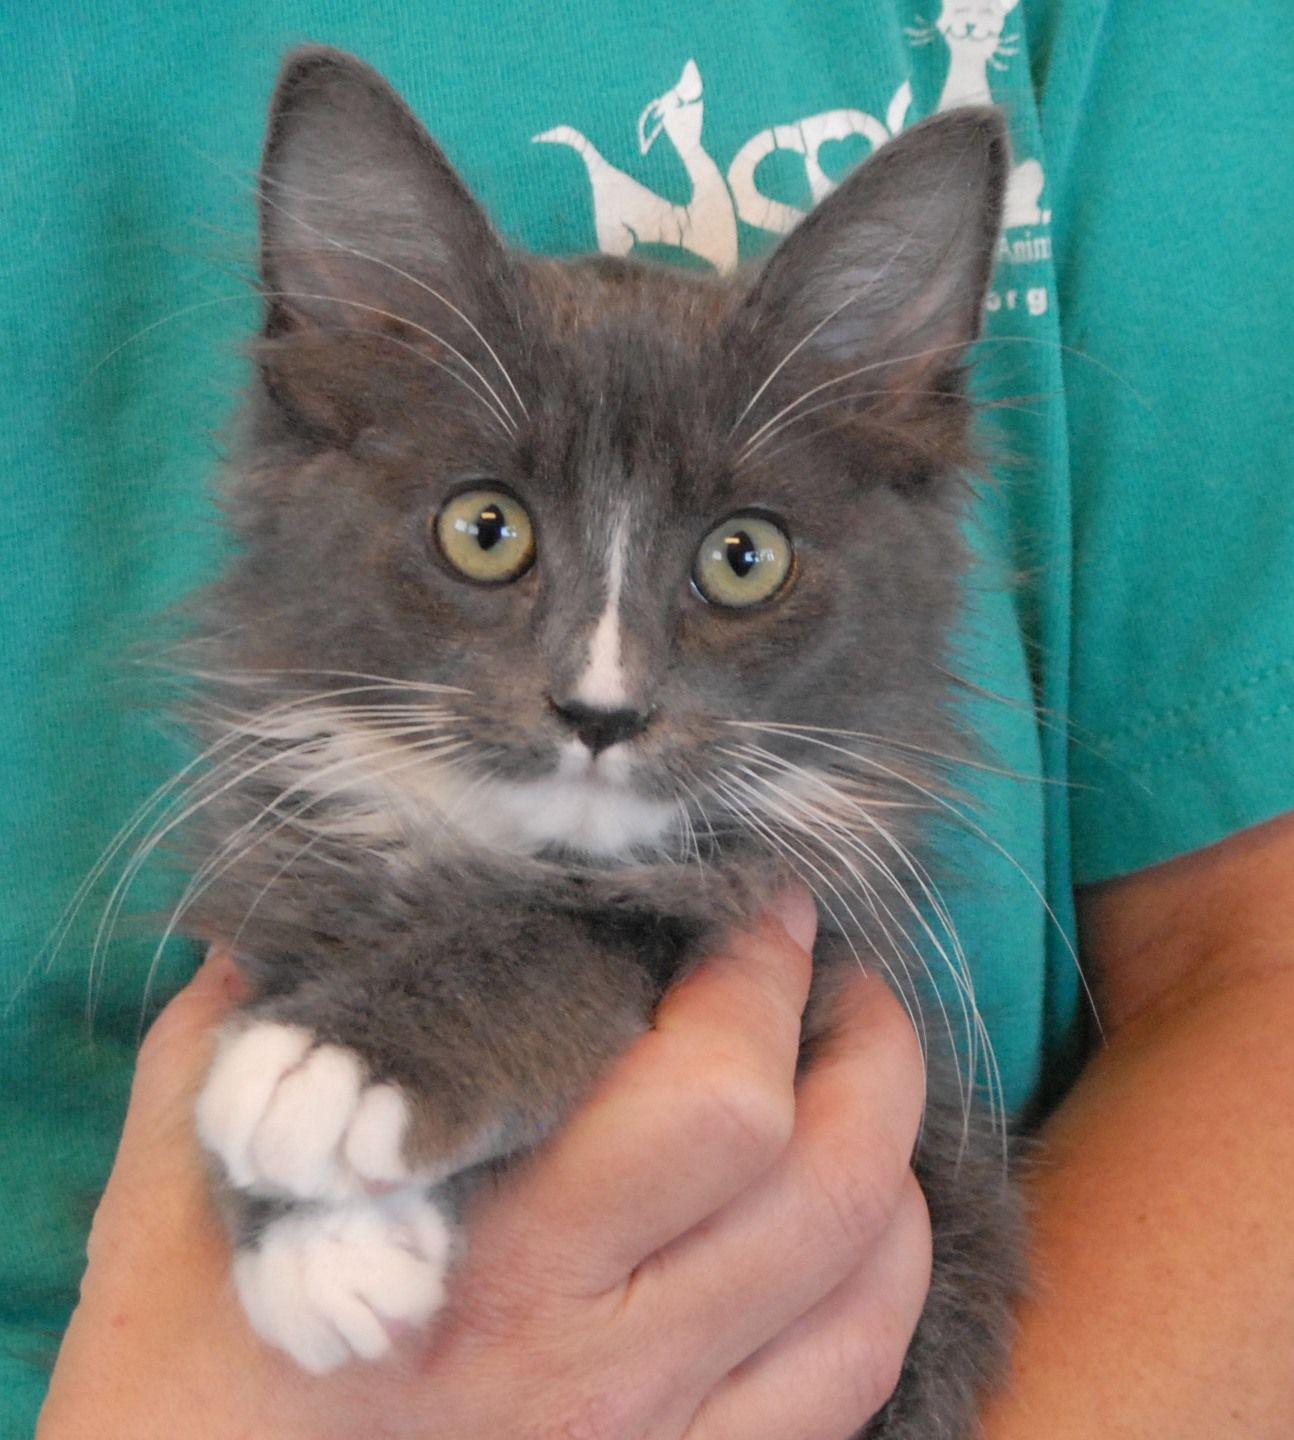 Boo is one of more than 20 rescued kittens available for